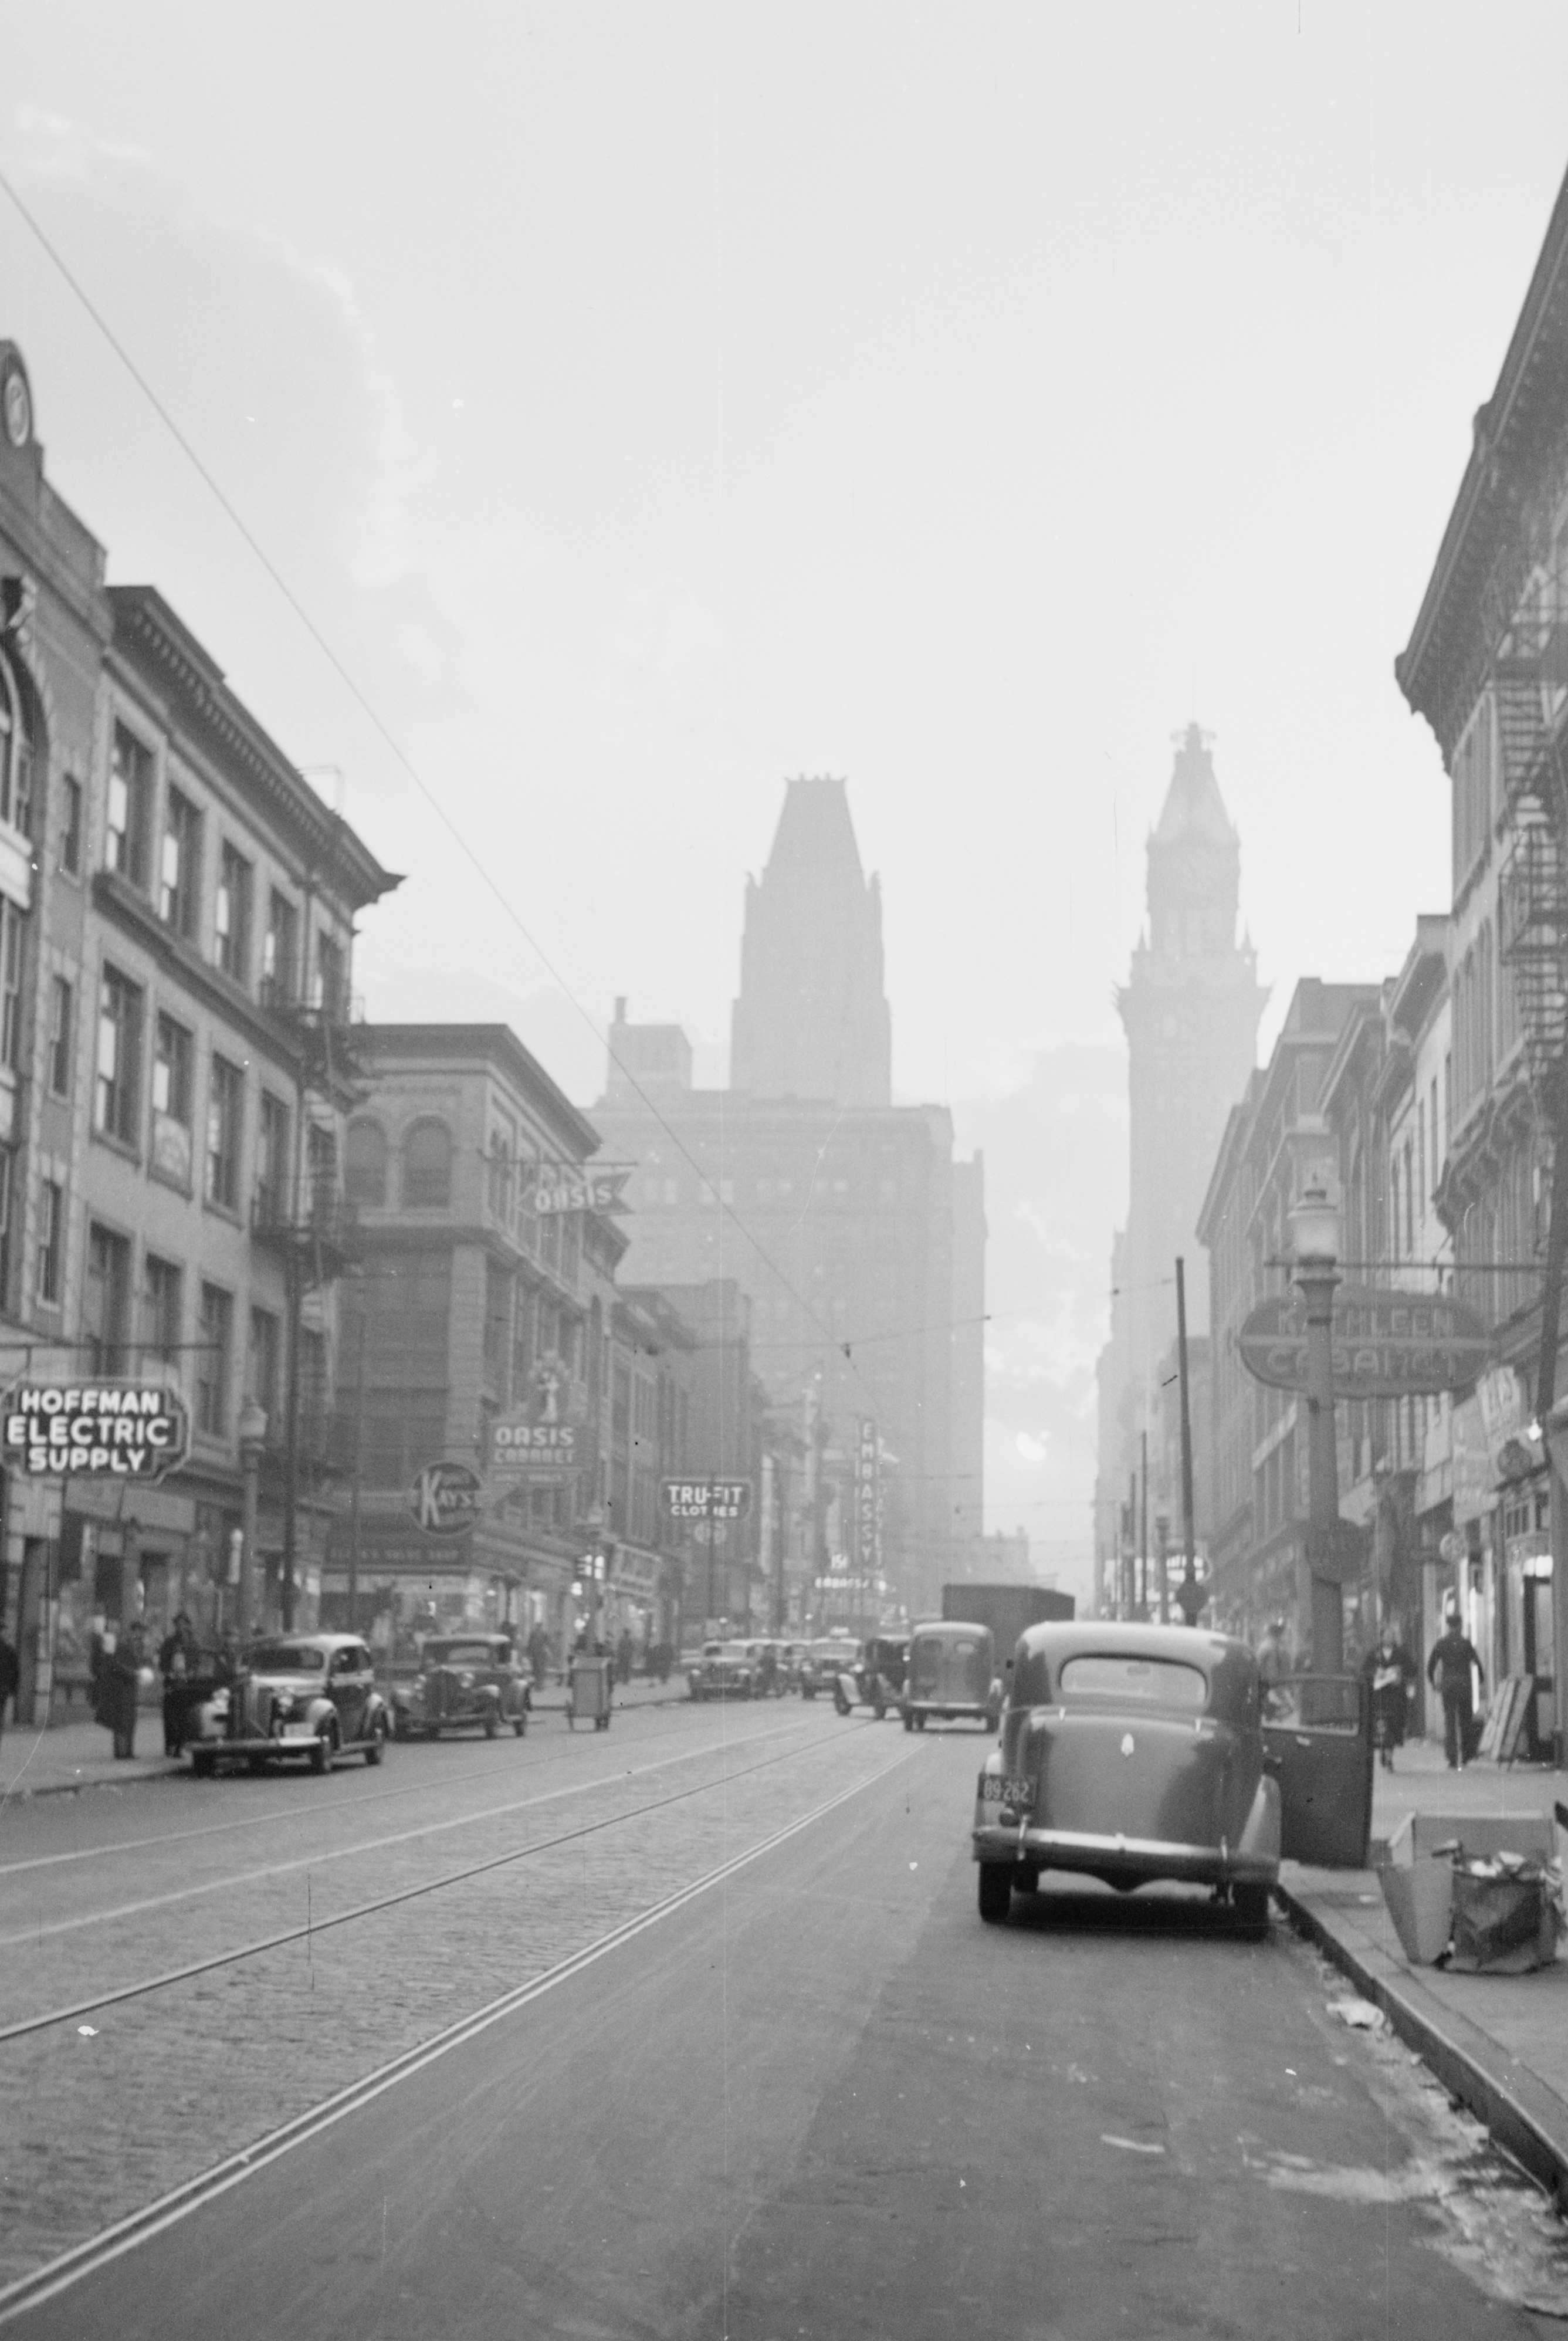 Where Is This in 1939 Baltimore?